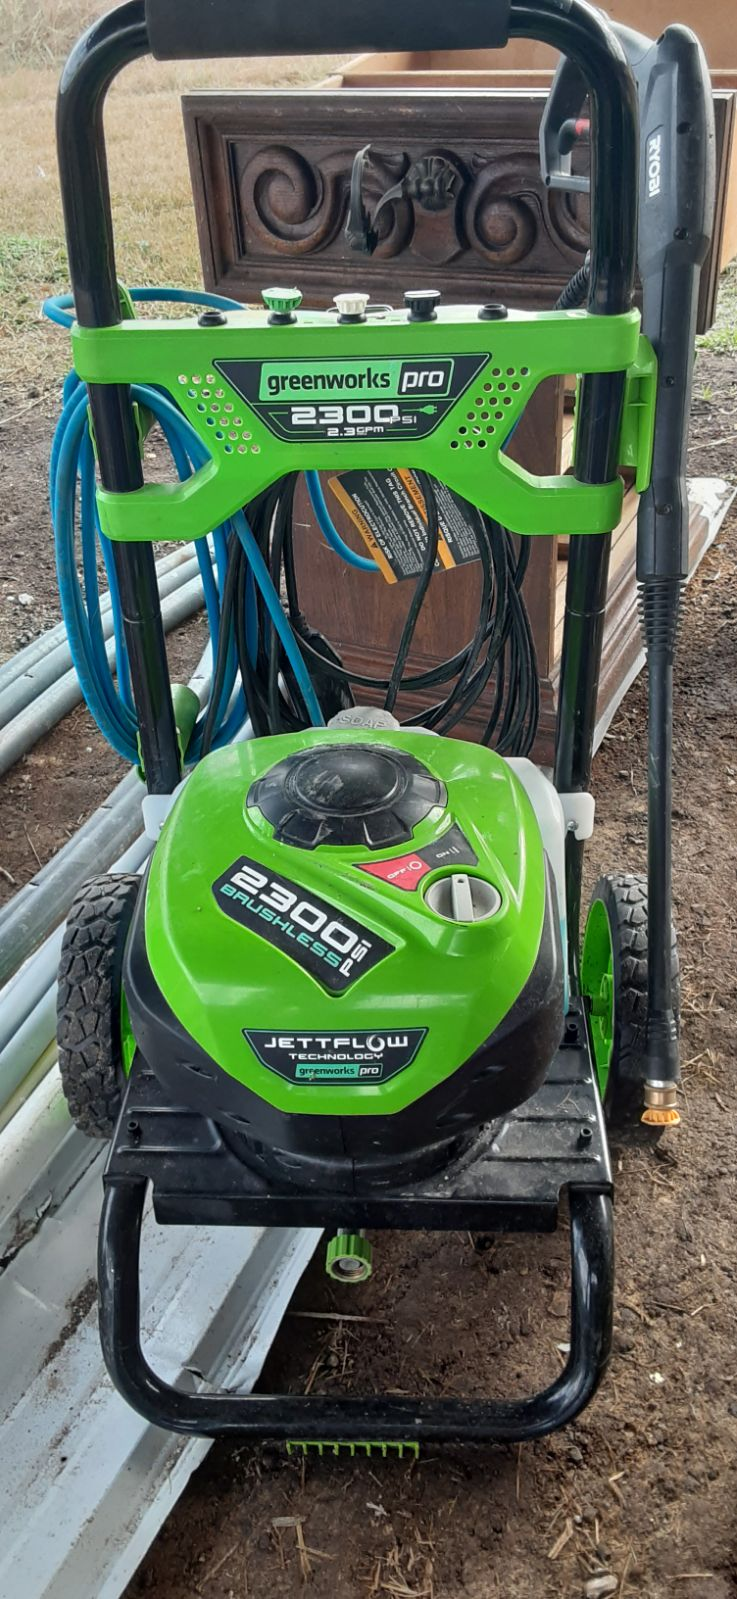 Greenworks Pro 2300-PSI 2.3-GPM Cold Wat